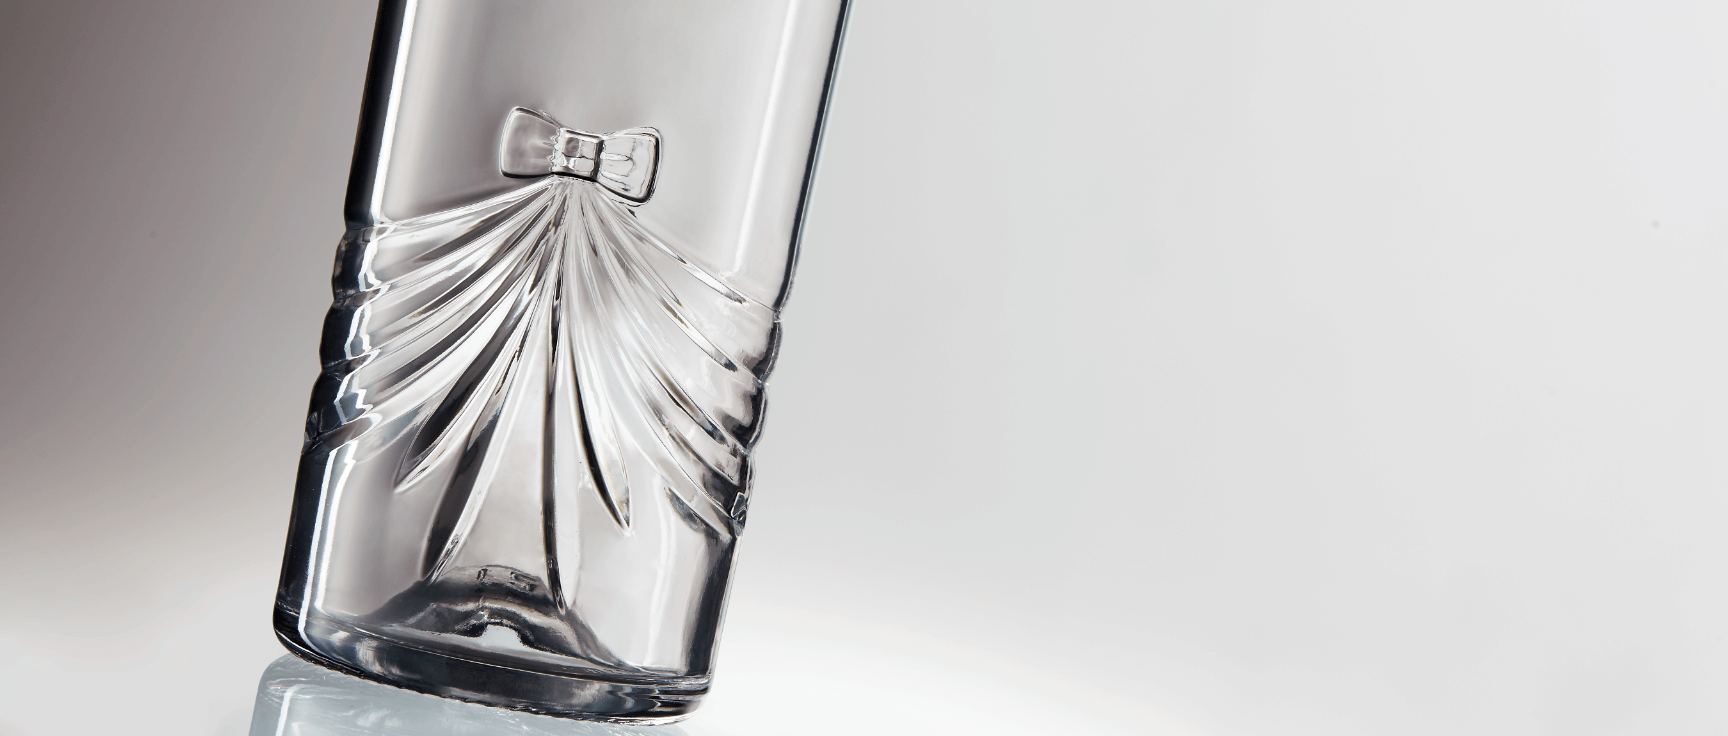 Engravings personalized for premium glass bottle by Selective Line